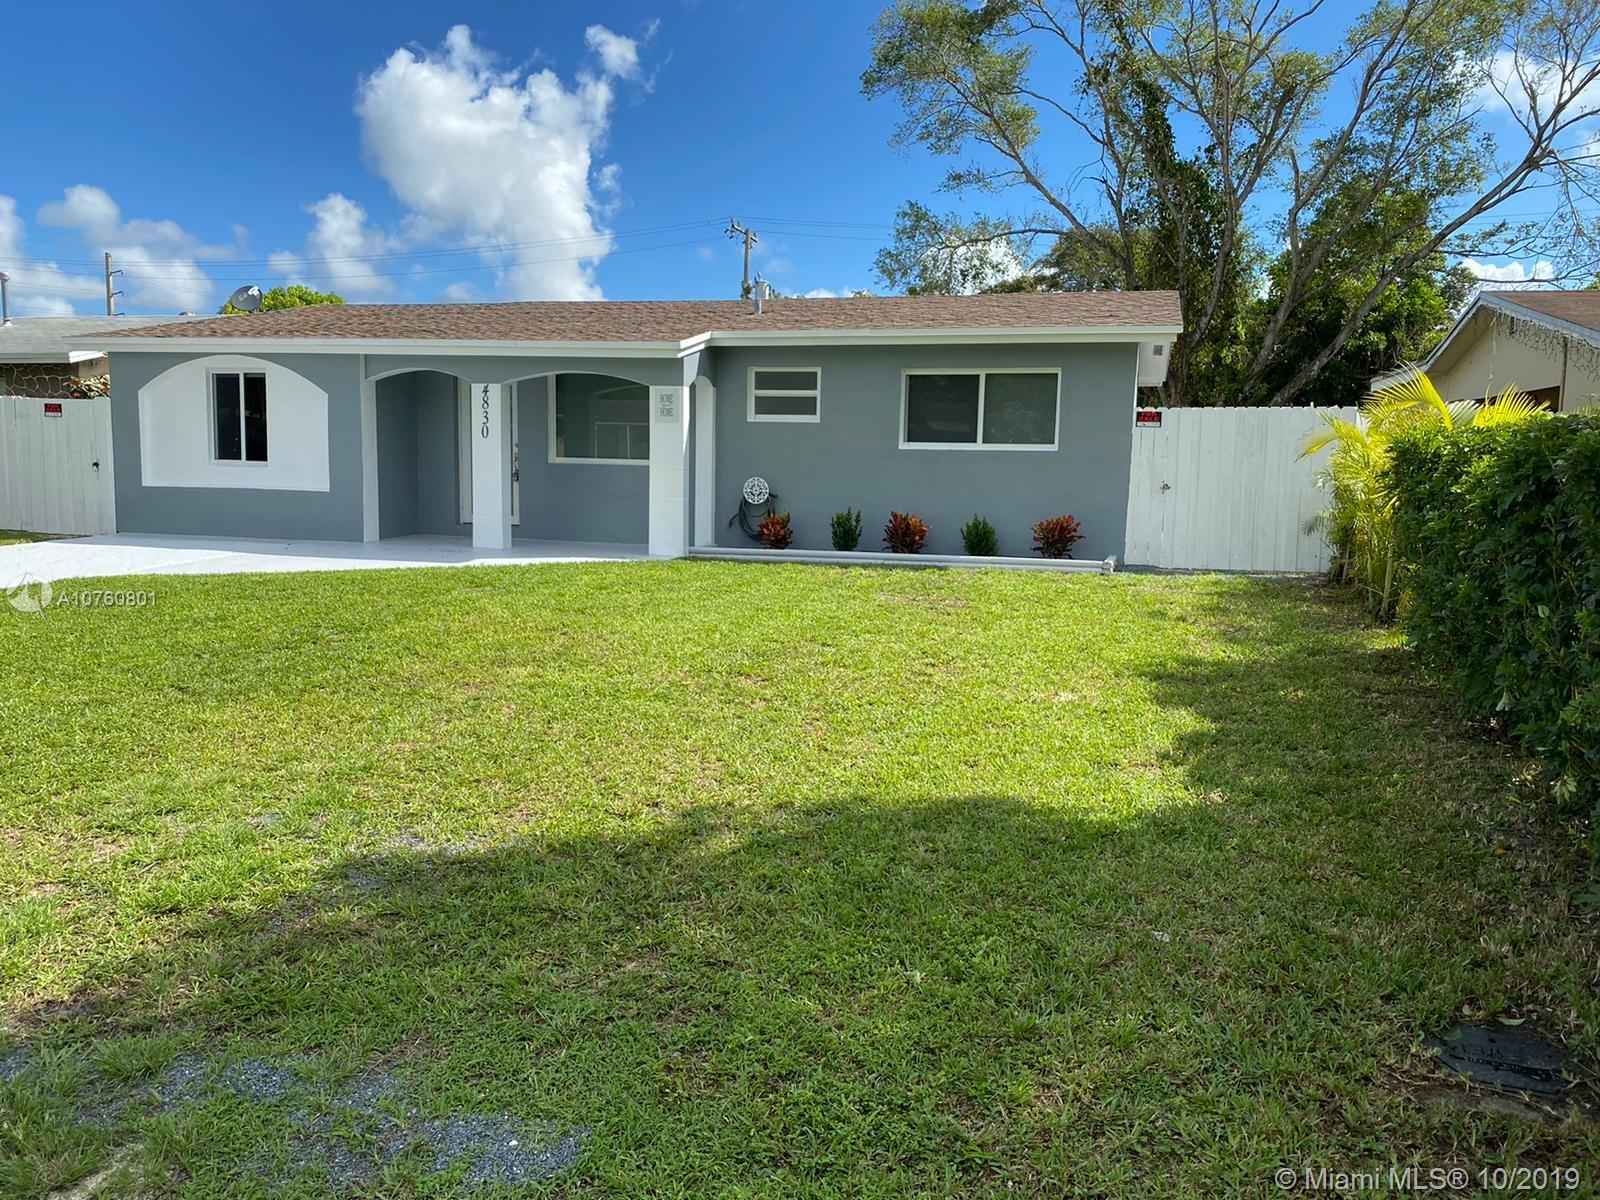 BEST VALUE IN THE AREA, This home is completely upgraded and features a spectacular covered terrace, a huge yard, 2 remodeled bathrooms, 4 spacious bedrooms, new high quality paint inside and out, partial impact doors and windows, granite counter-tops, custom lighting, and so much more. This one wont last!! minutes from the new Seminole Hardrock Hotel Ft. Lauderdale International and the Florida Turnpike, walk to public transportation.